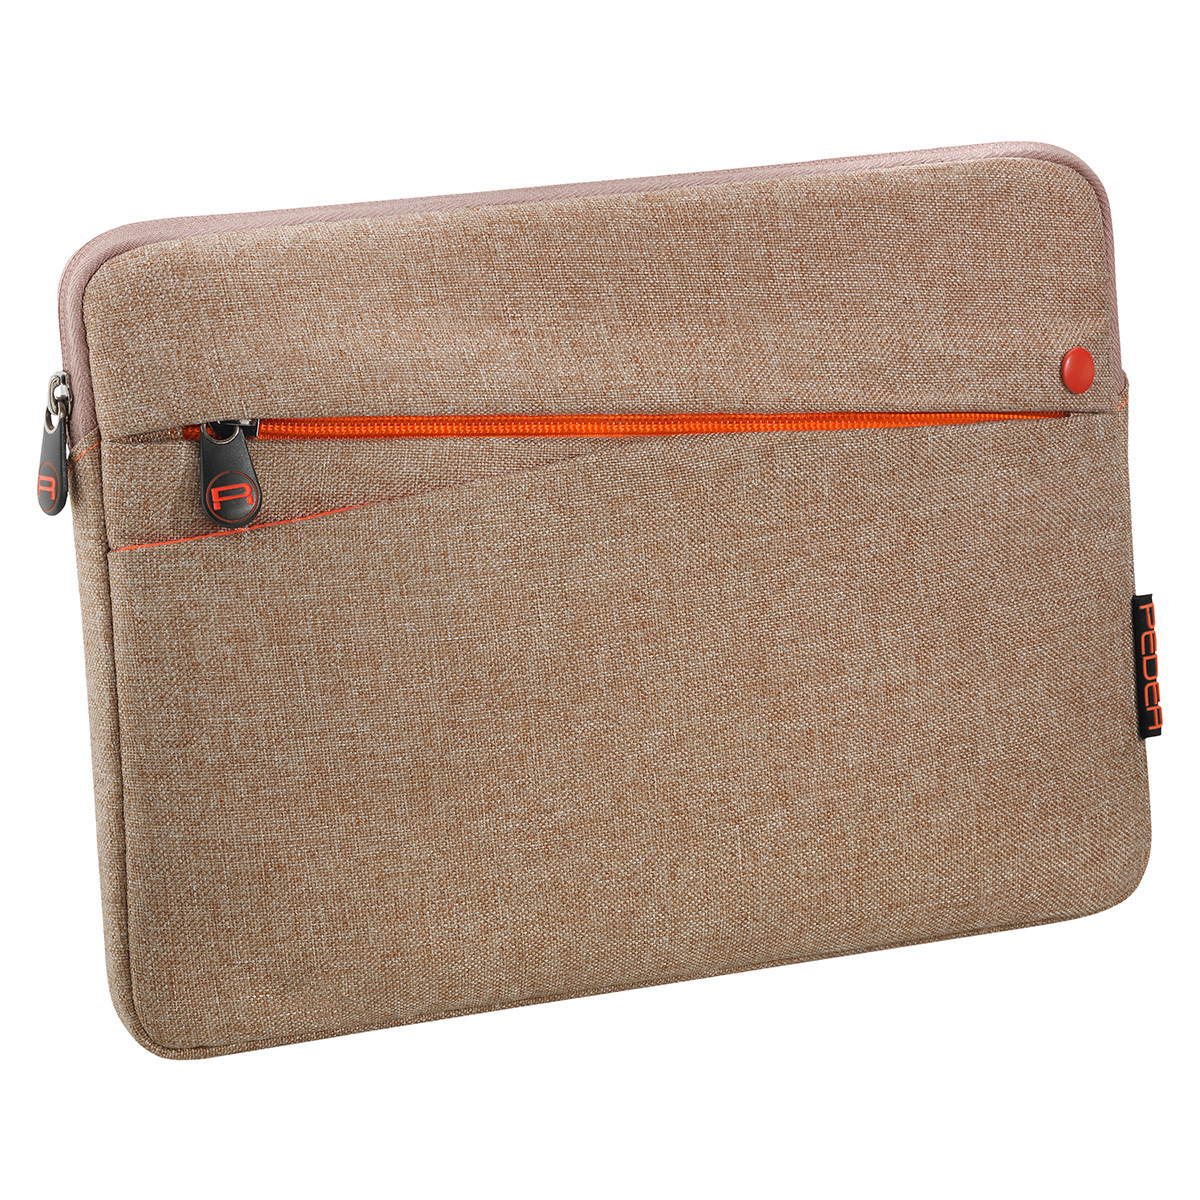 00758a8bad PEDEA Fashion Tablet Case Sleeve 10.1 inch, beige-64060022